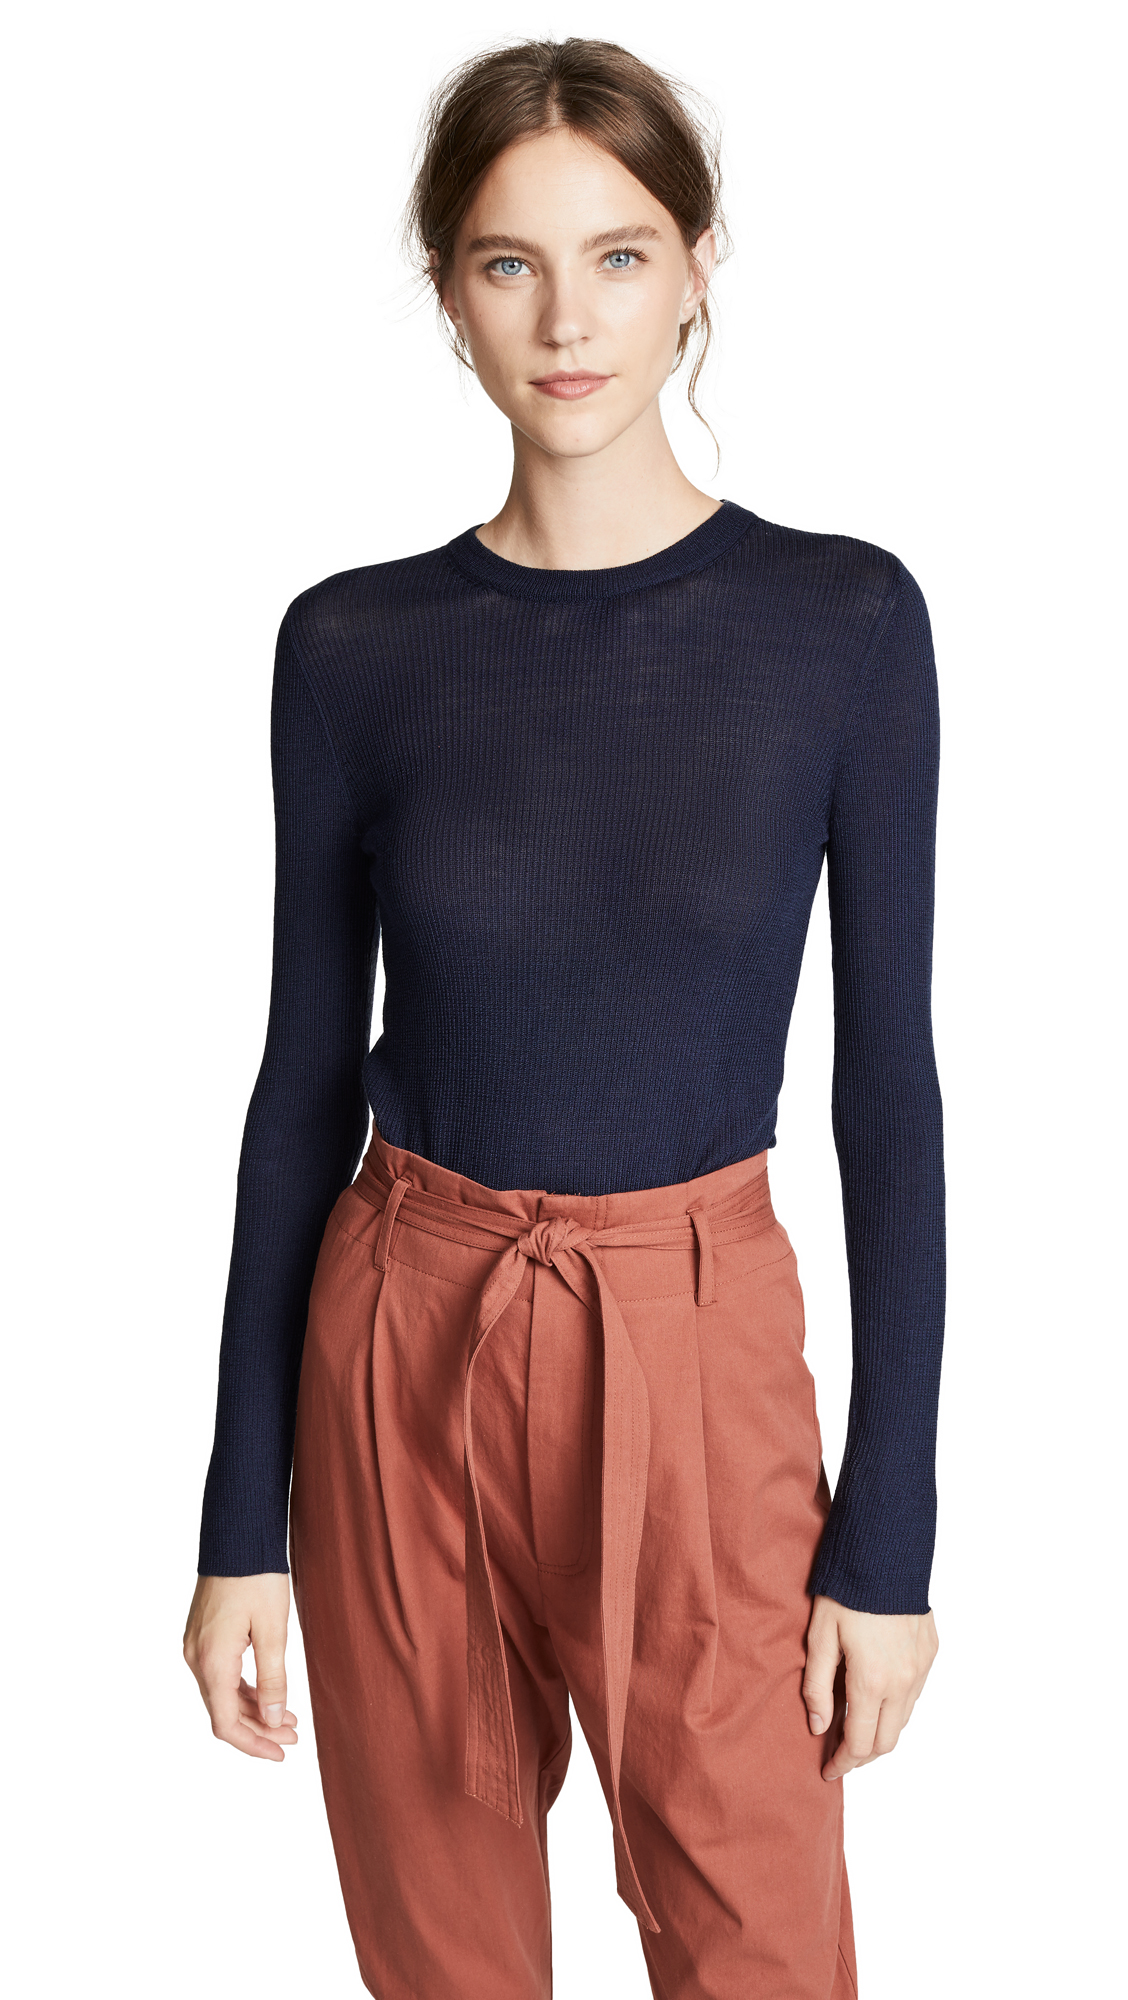 LINE & DOT Cassi Sweater in Navy